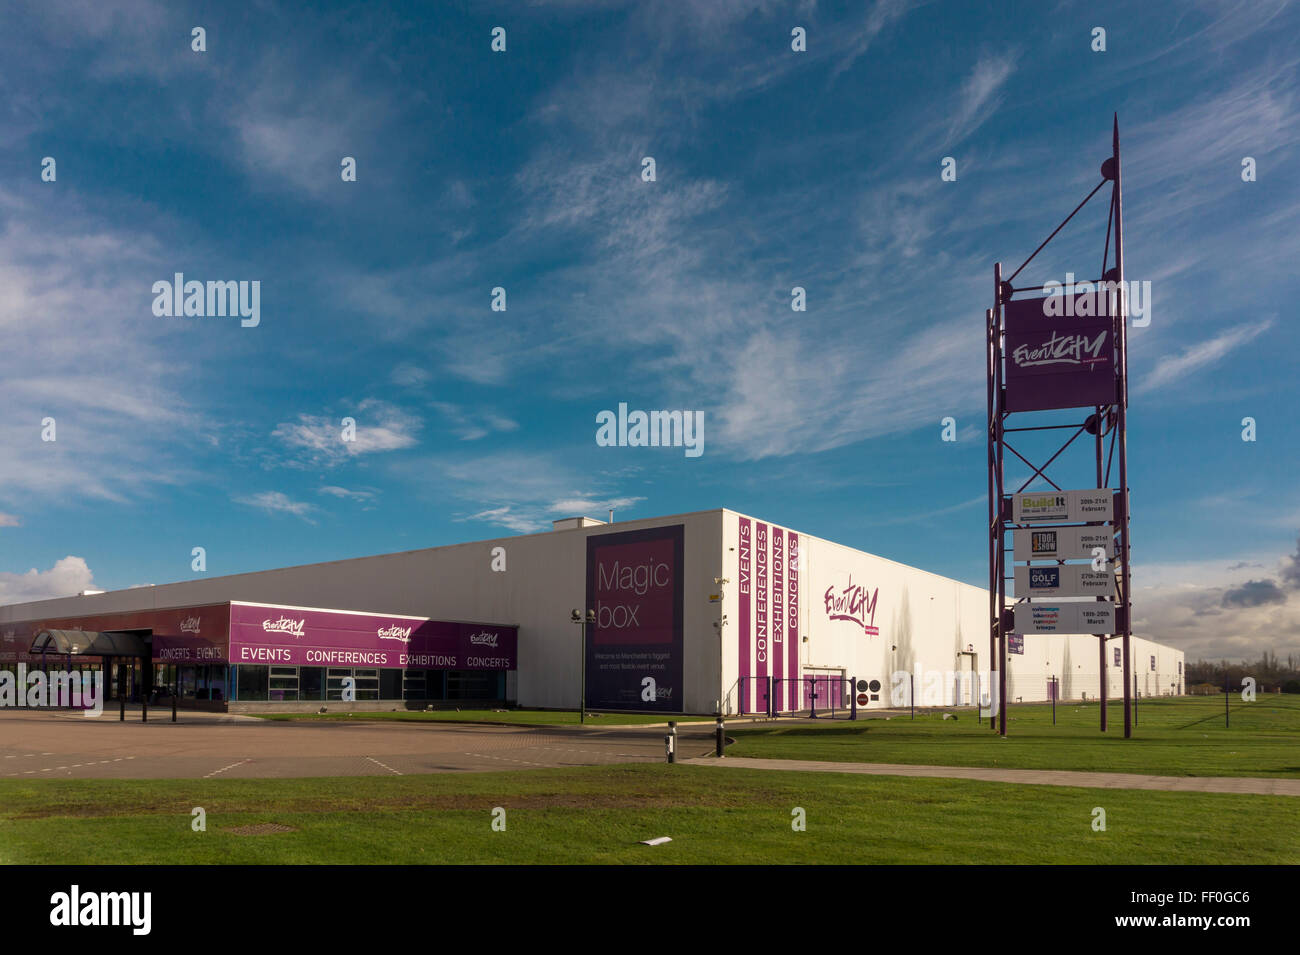 Event City Magic Box exhibition venue in Manchester - Stock Image